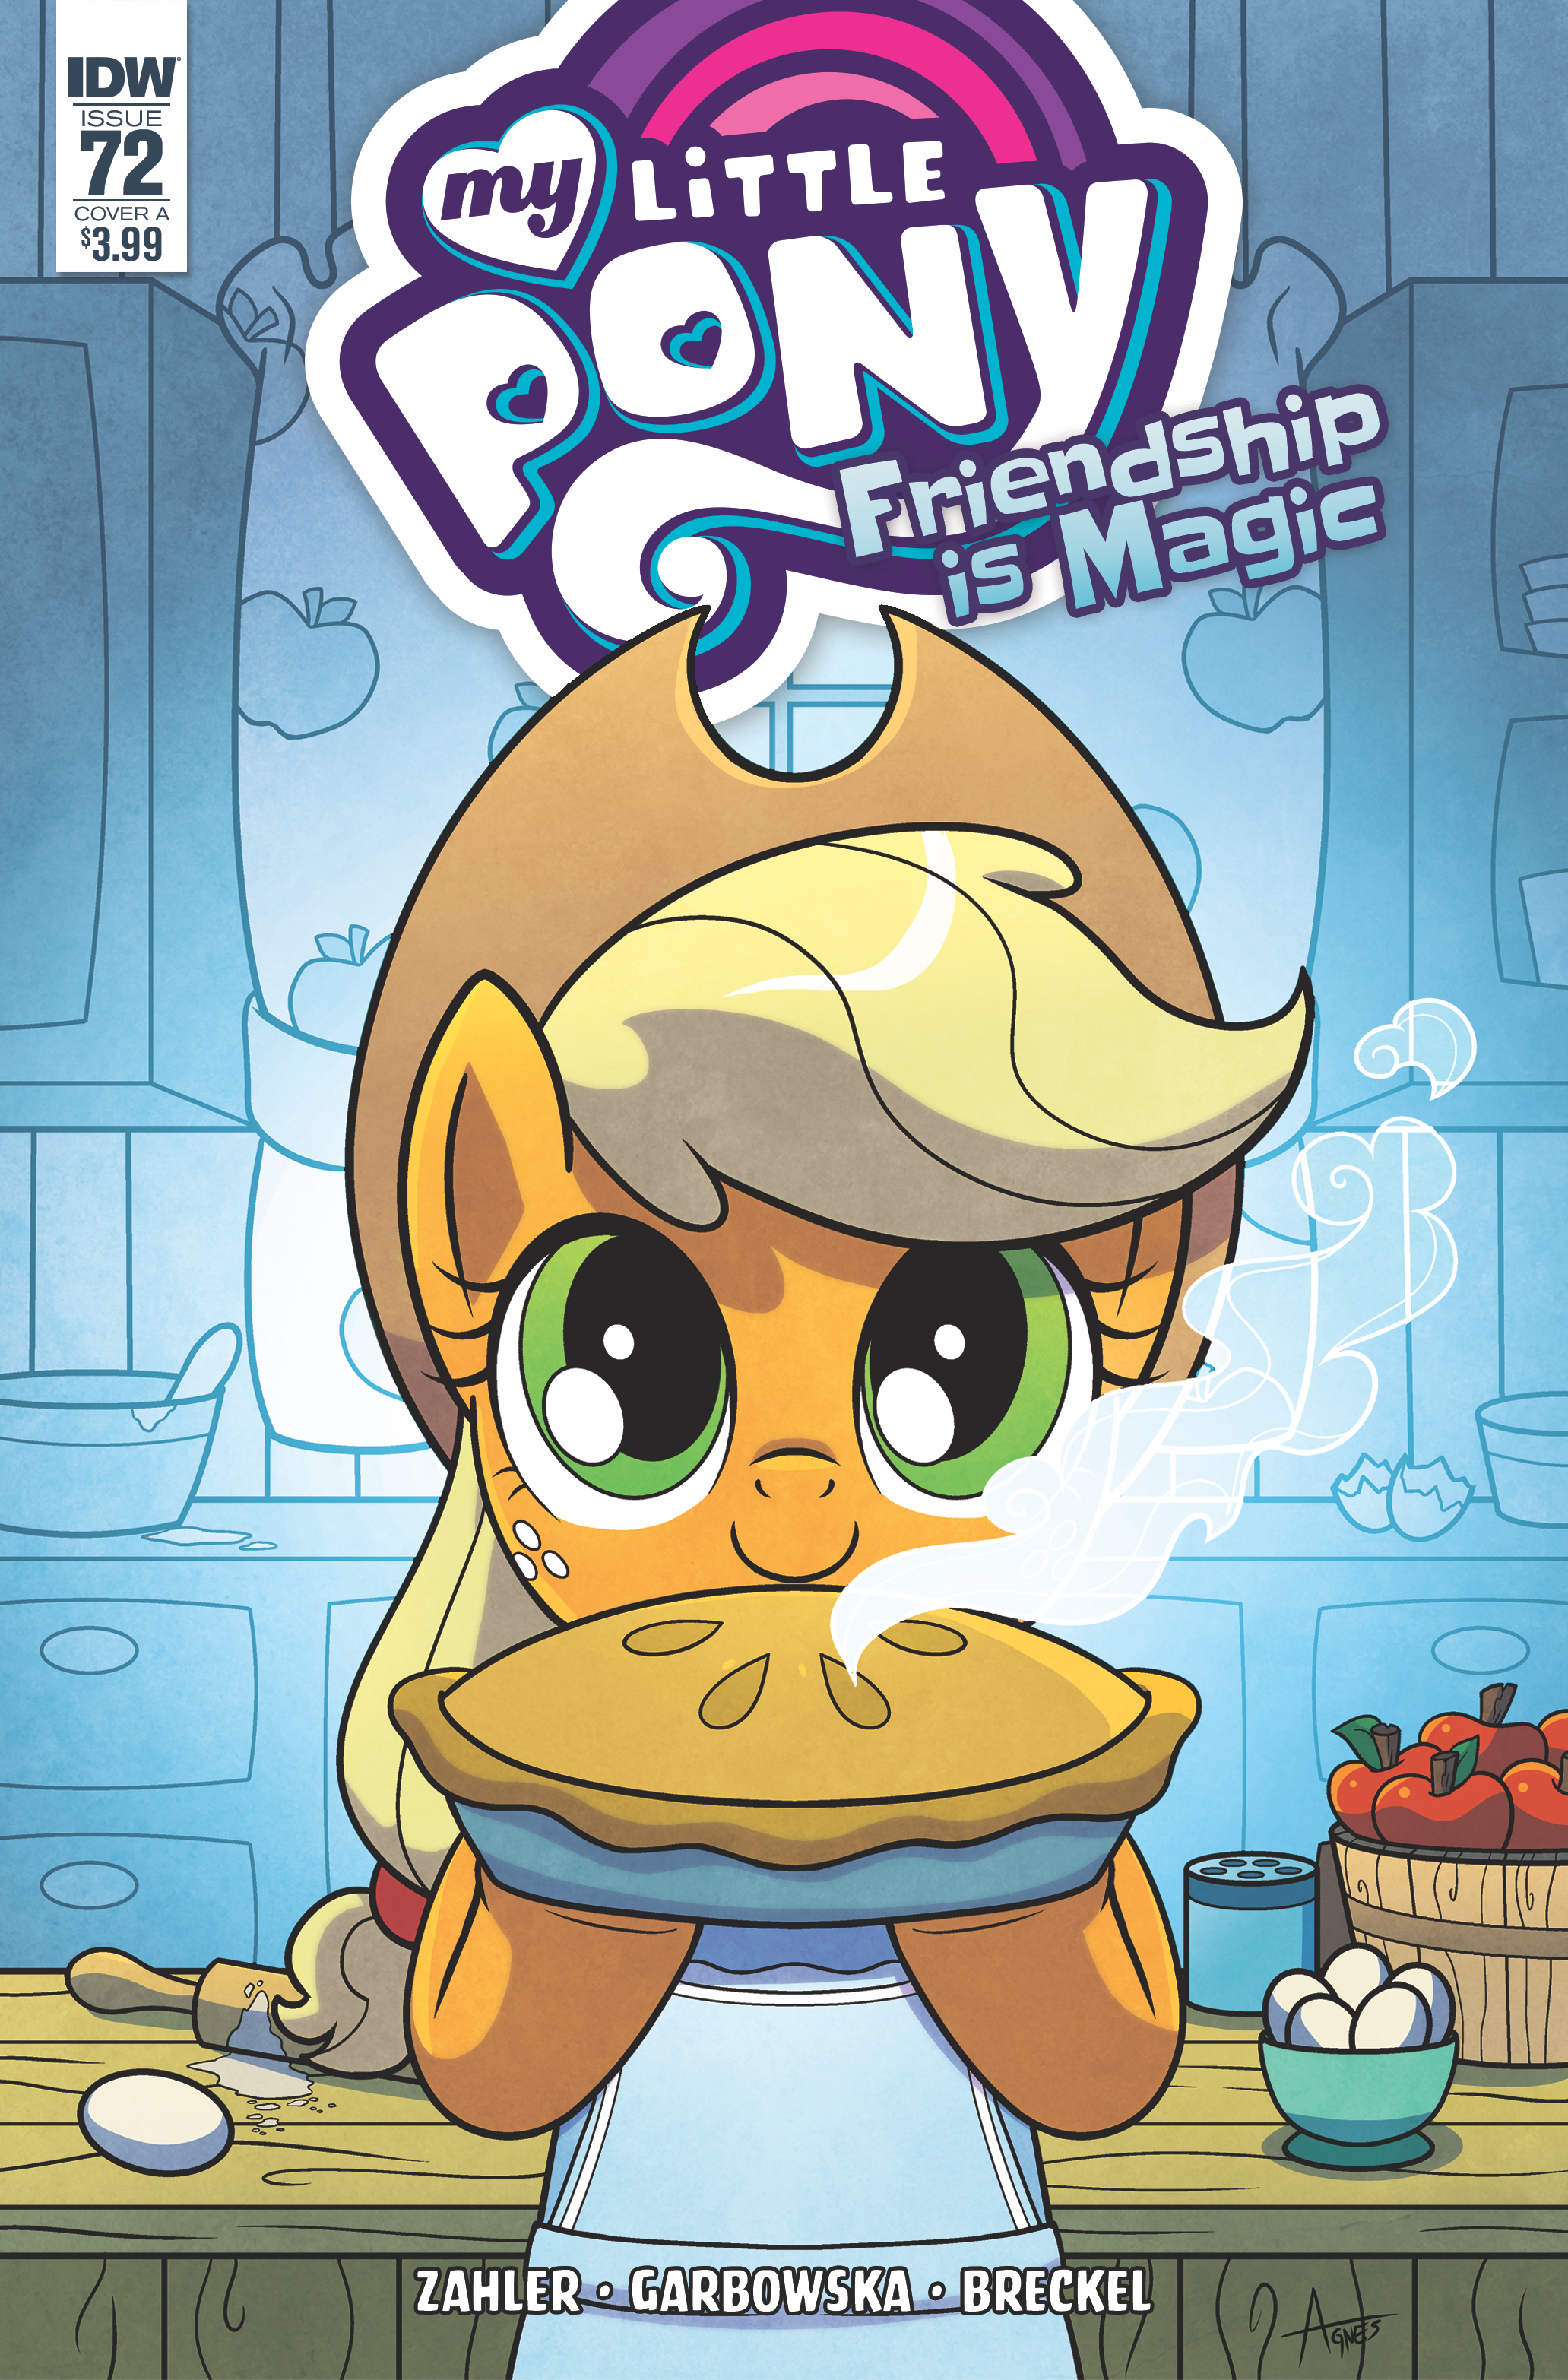 Friendship is Magic Issue 72